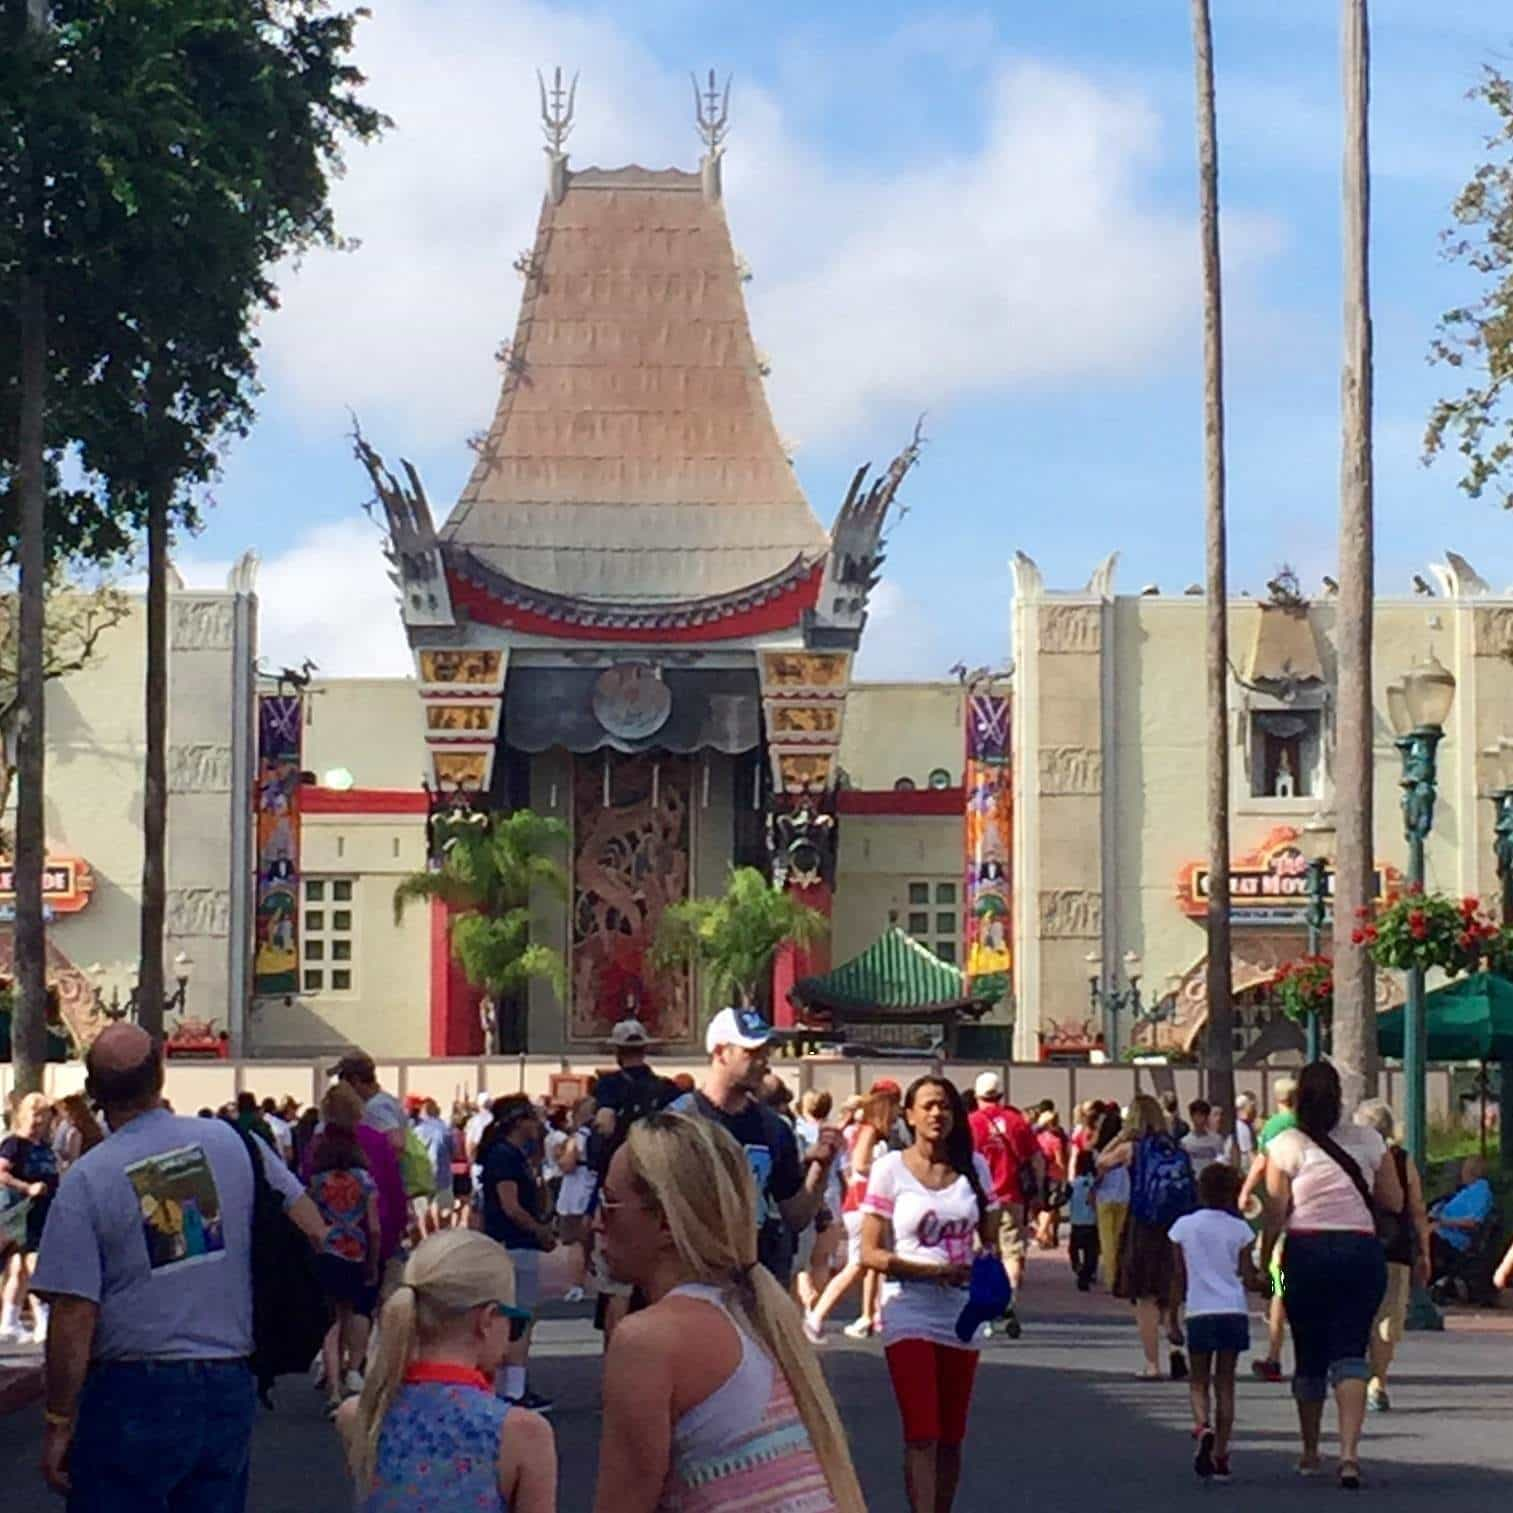 Hollywood Boulevard in Disney's Hollywood Studios today. Used with permission.